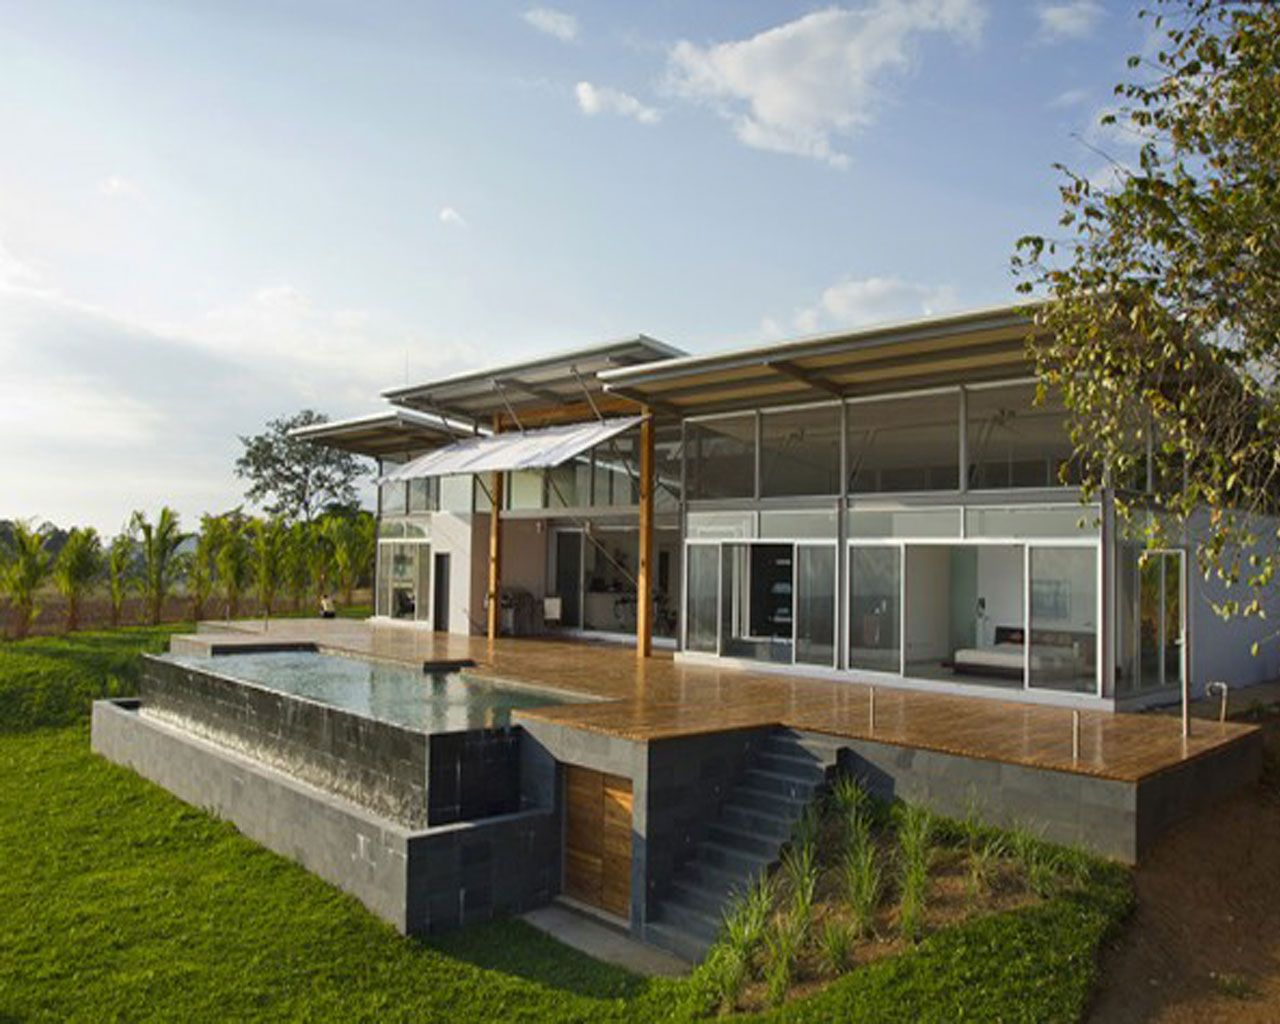 Best Kitchen Gallery: Hill Houses Designs Pretty Cool Modern Home Des… Furniture And of Modern Home Base Of Steep Hillside on rachelxblog.com